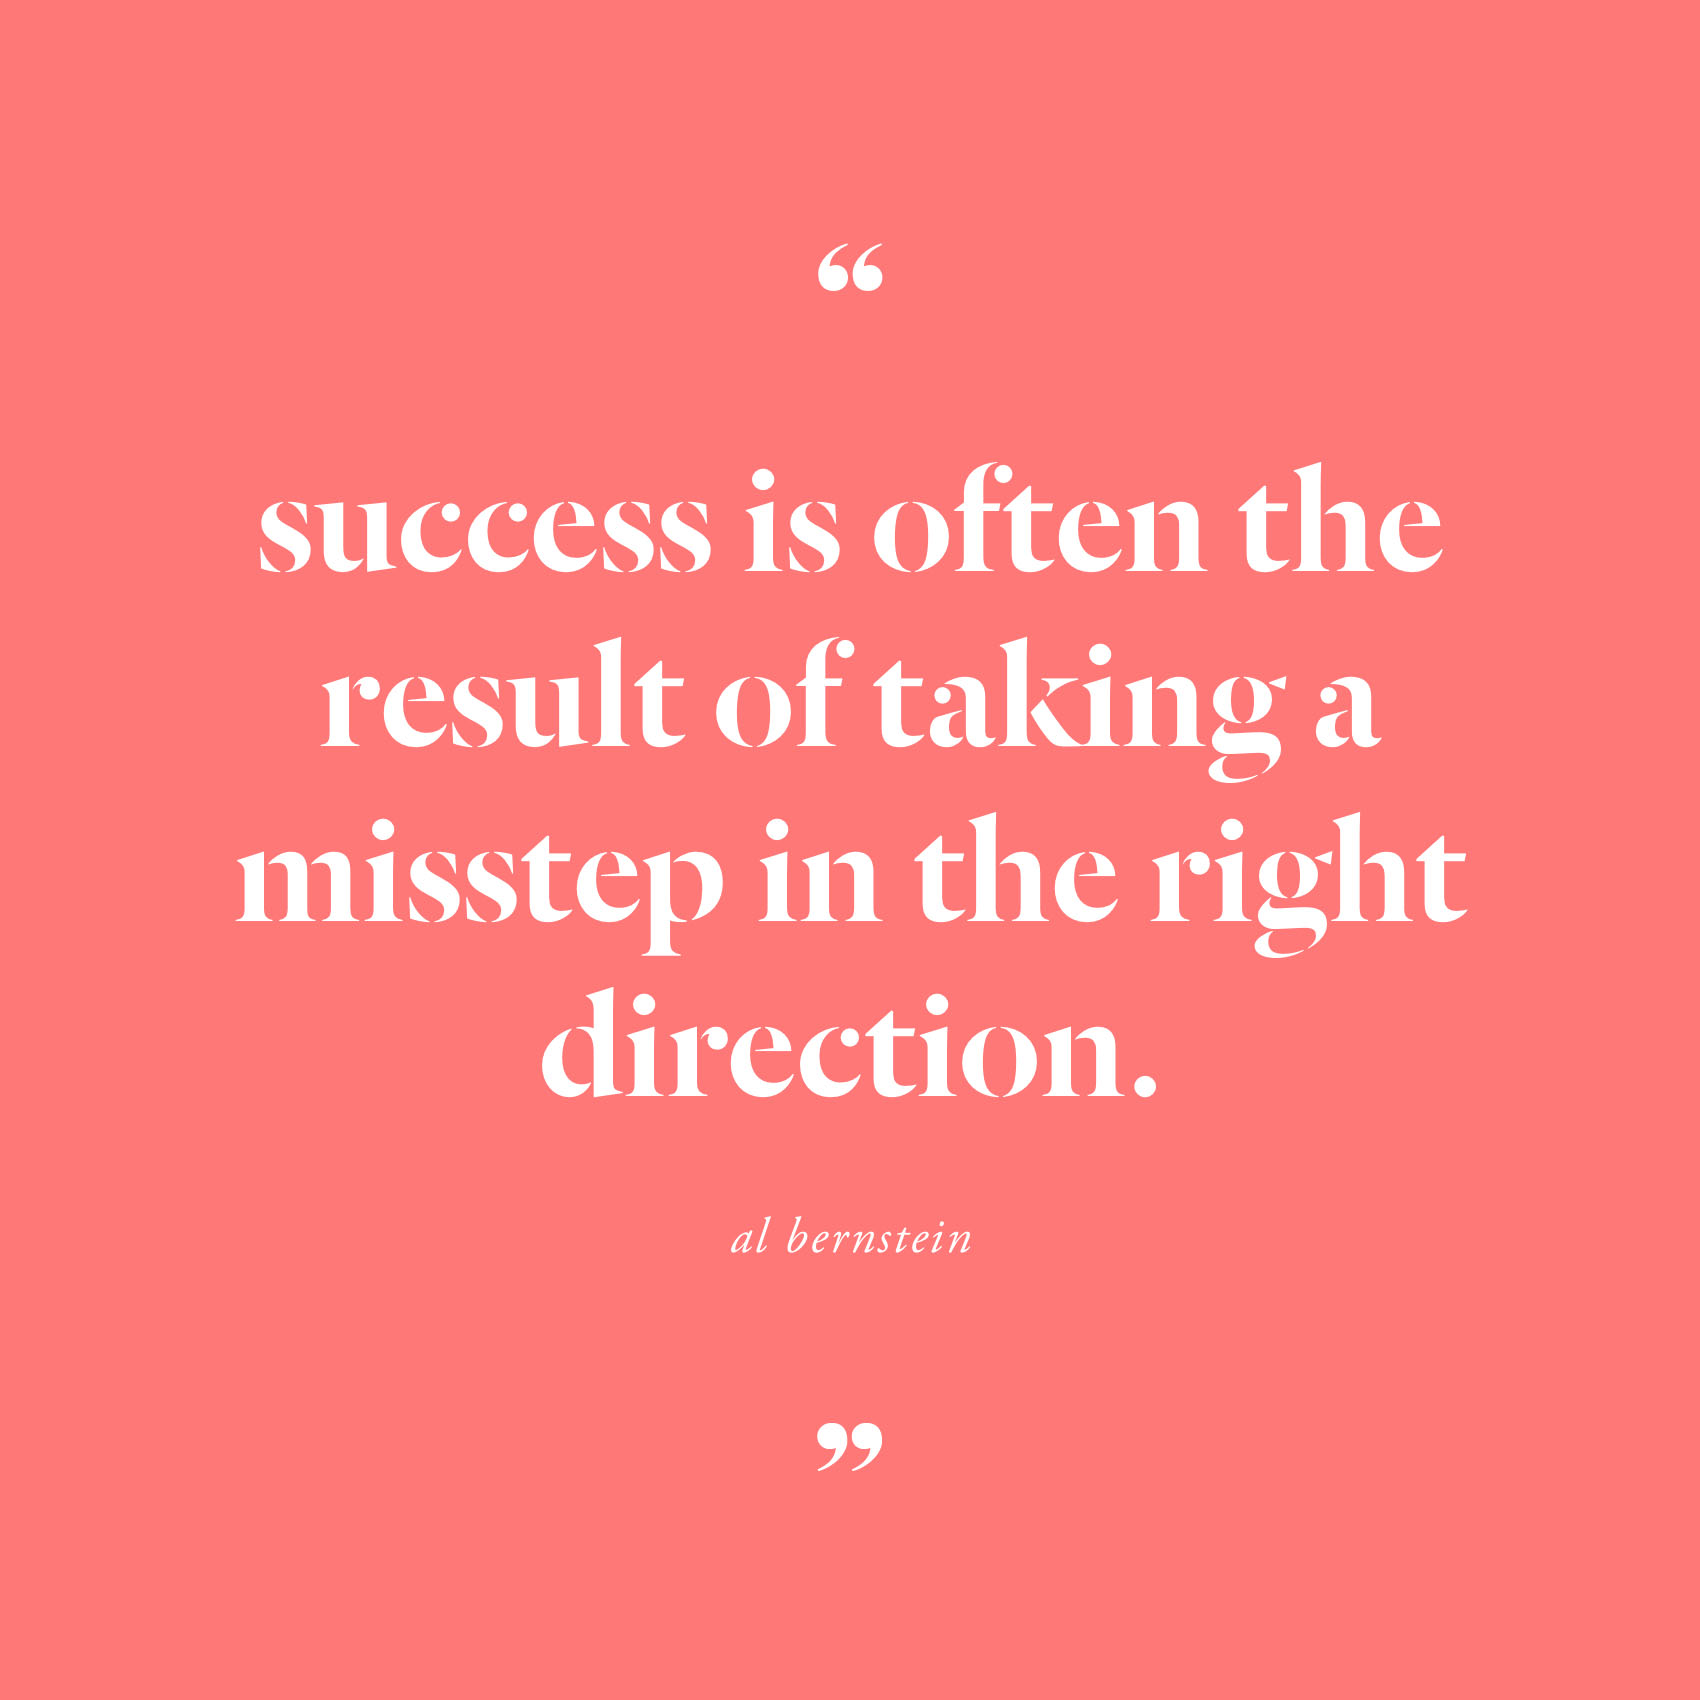 success is often the result of taking a misstep in the right direction | via @victoriamstudio